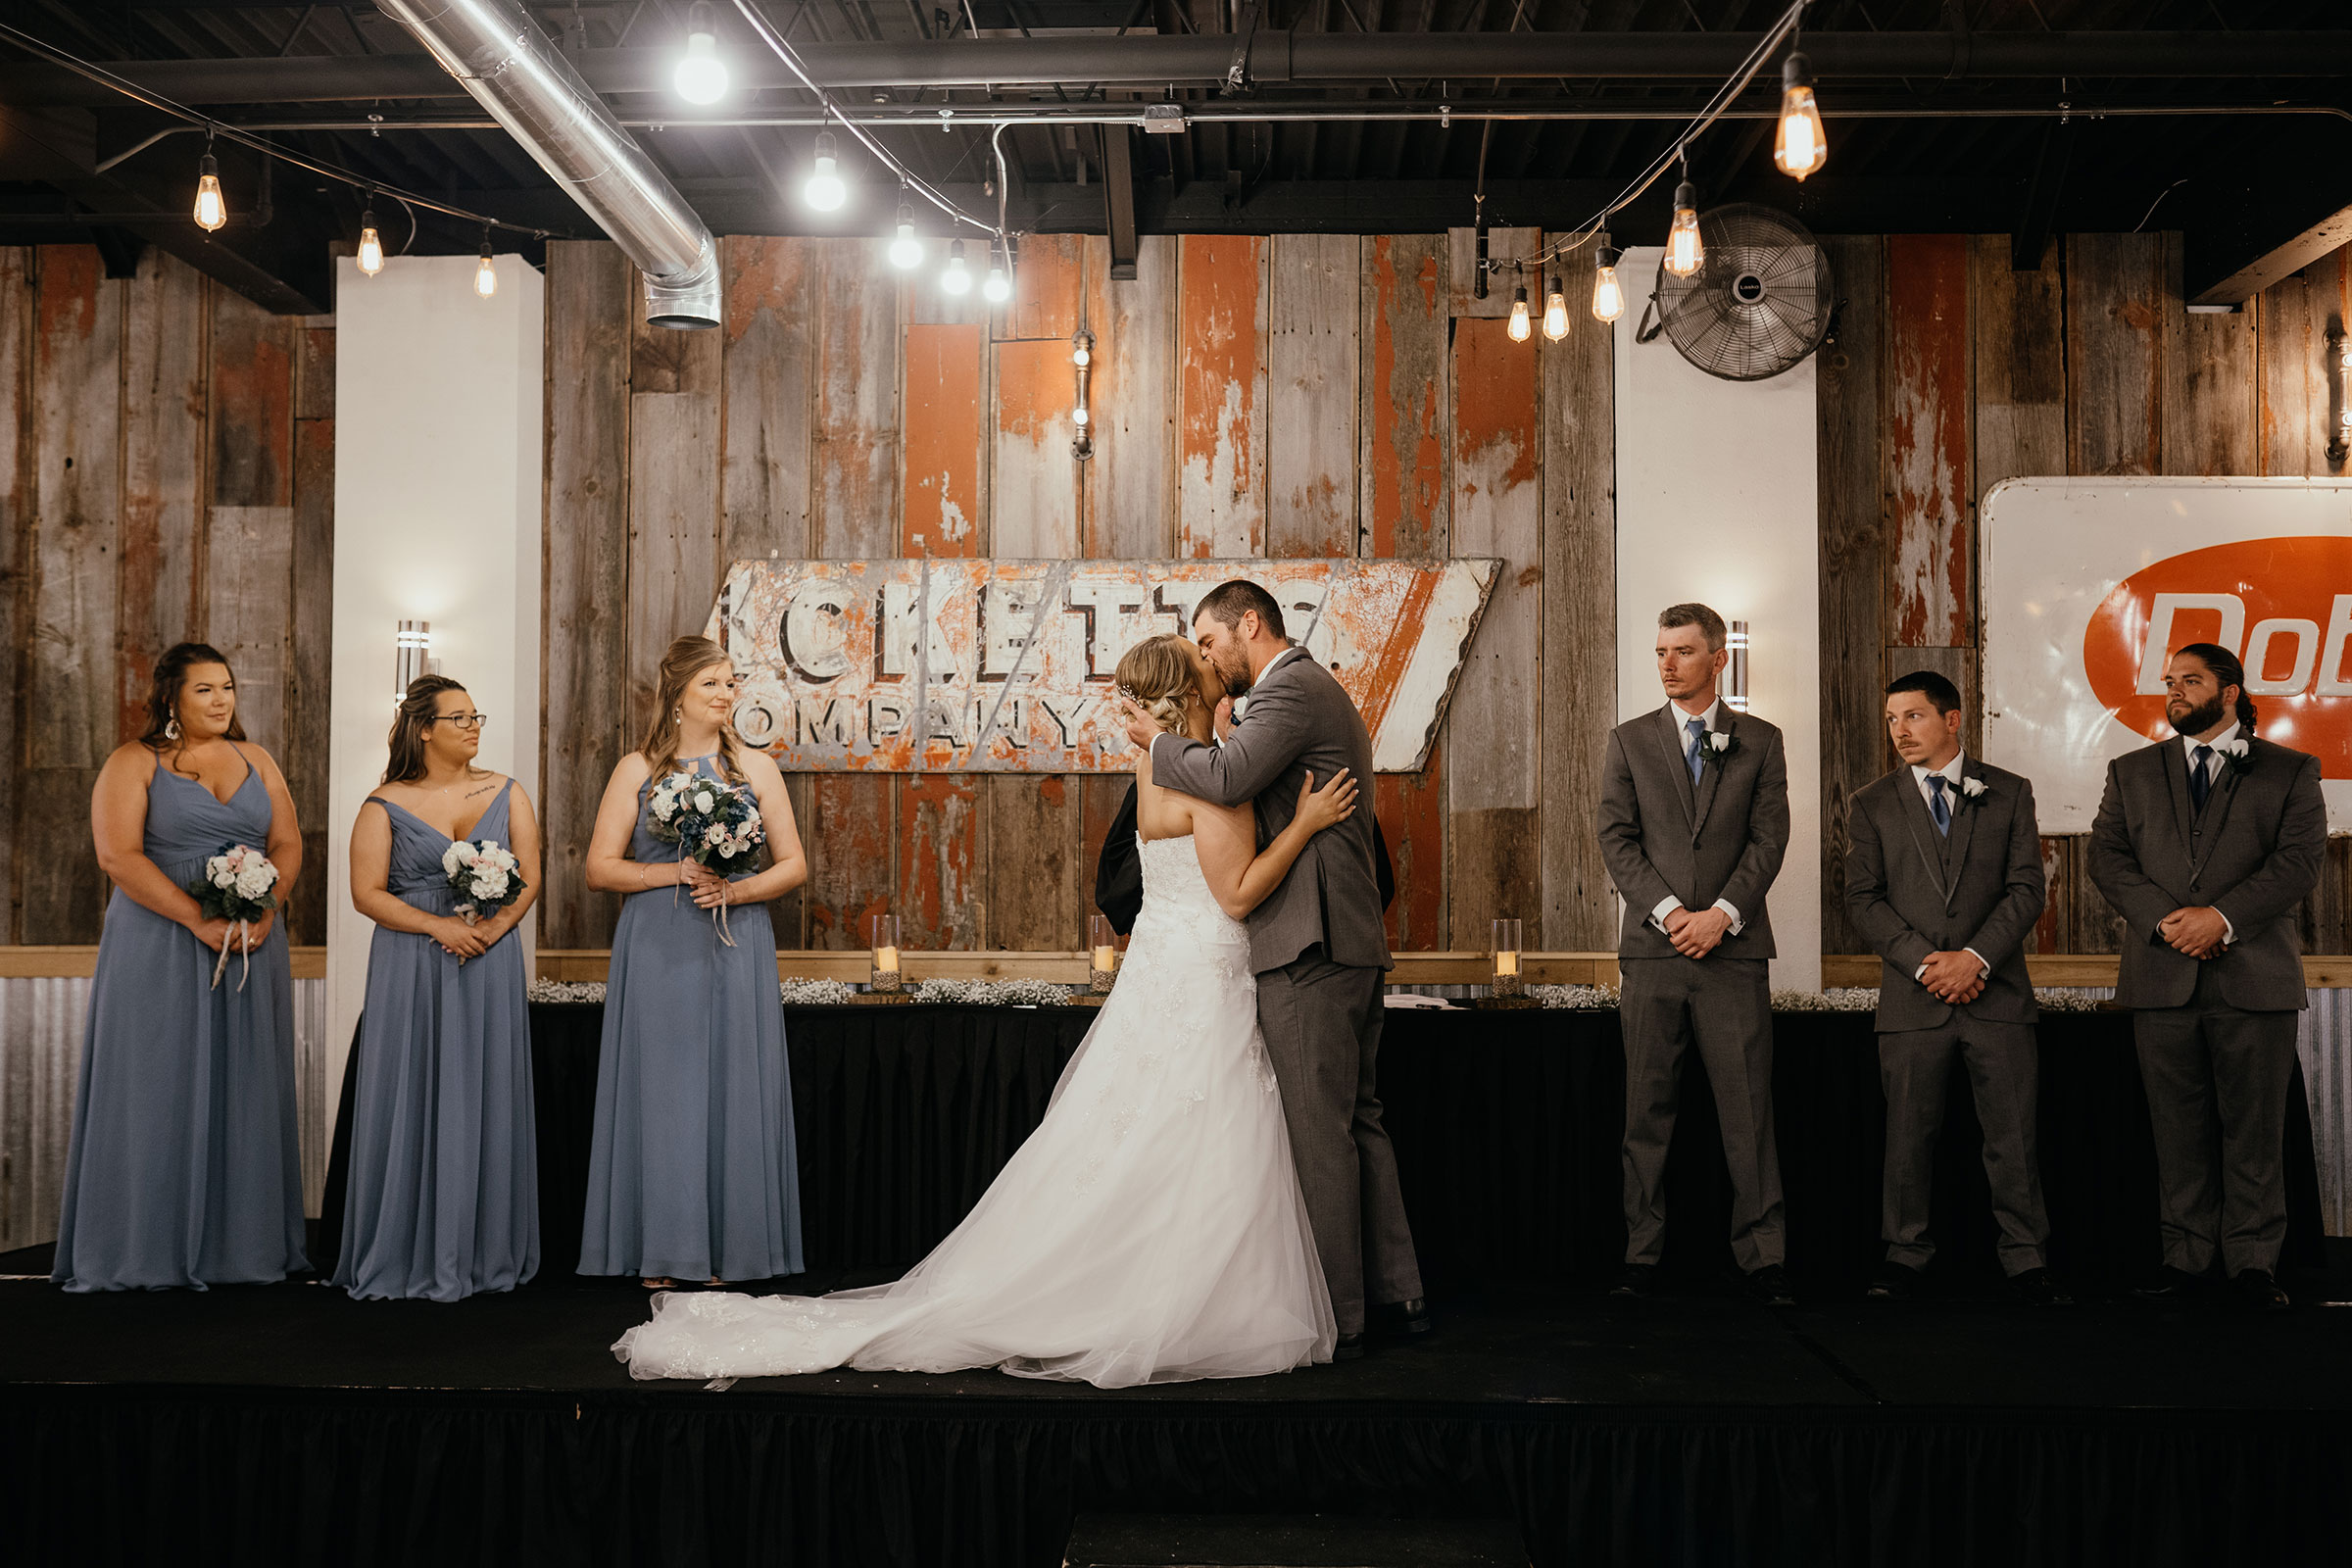 bride-groom-first-kiss-at-ceremony-decades-event-center-building-desmoines-iowa-raelyn-ramey-photography..jpg